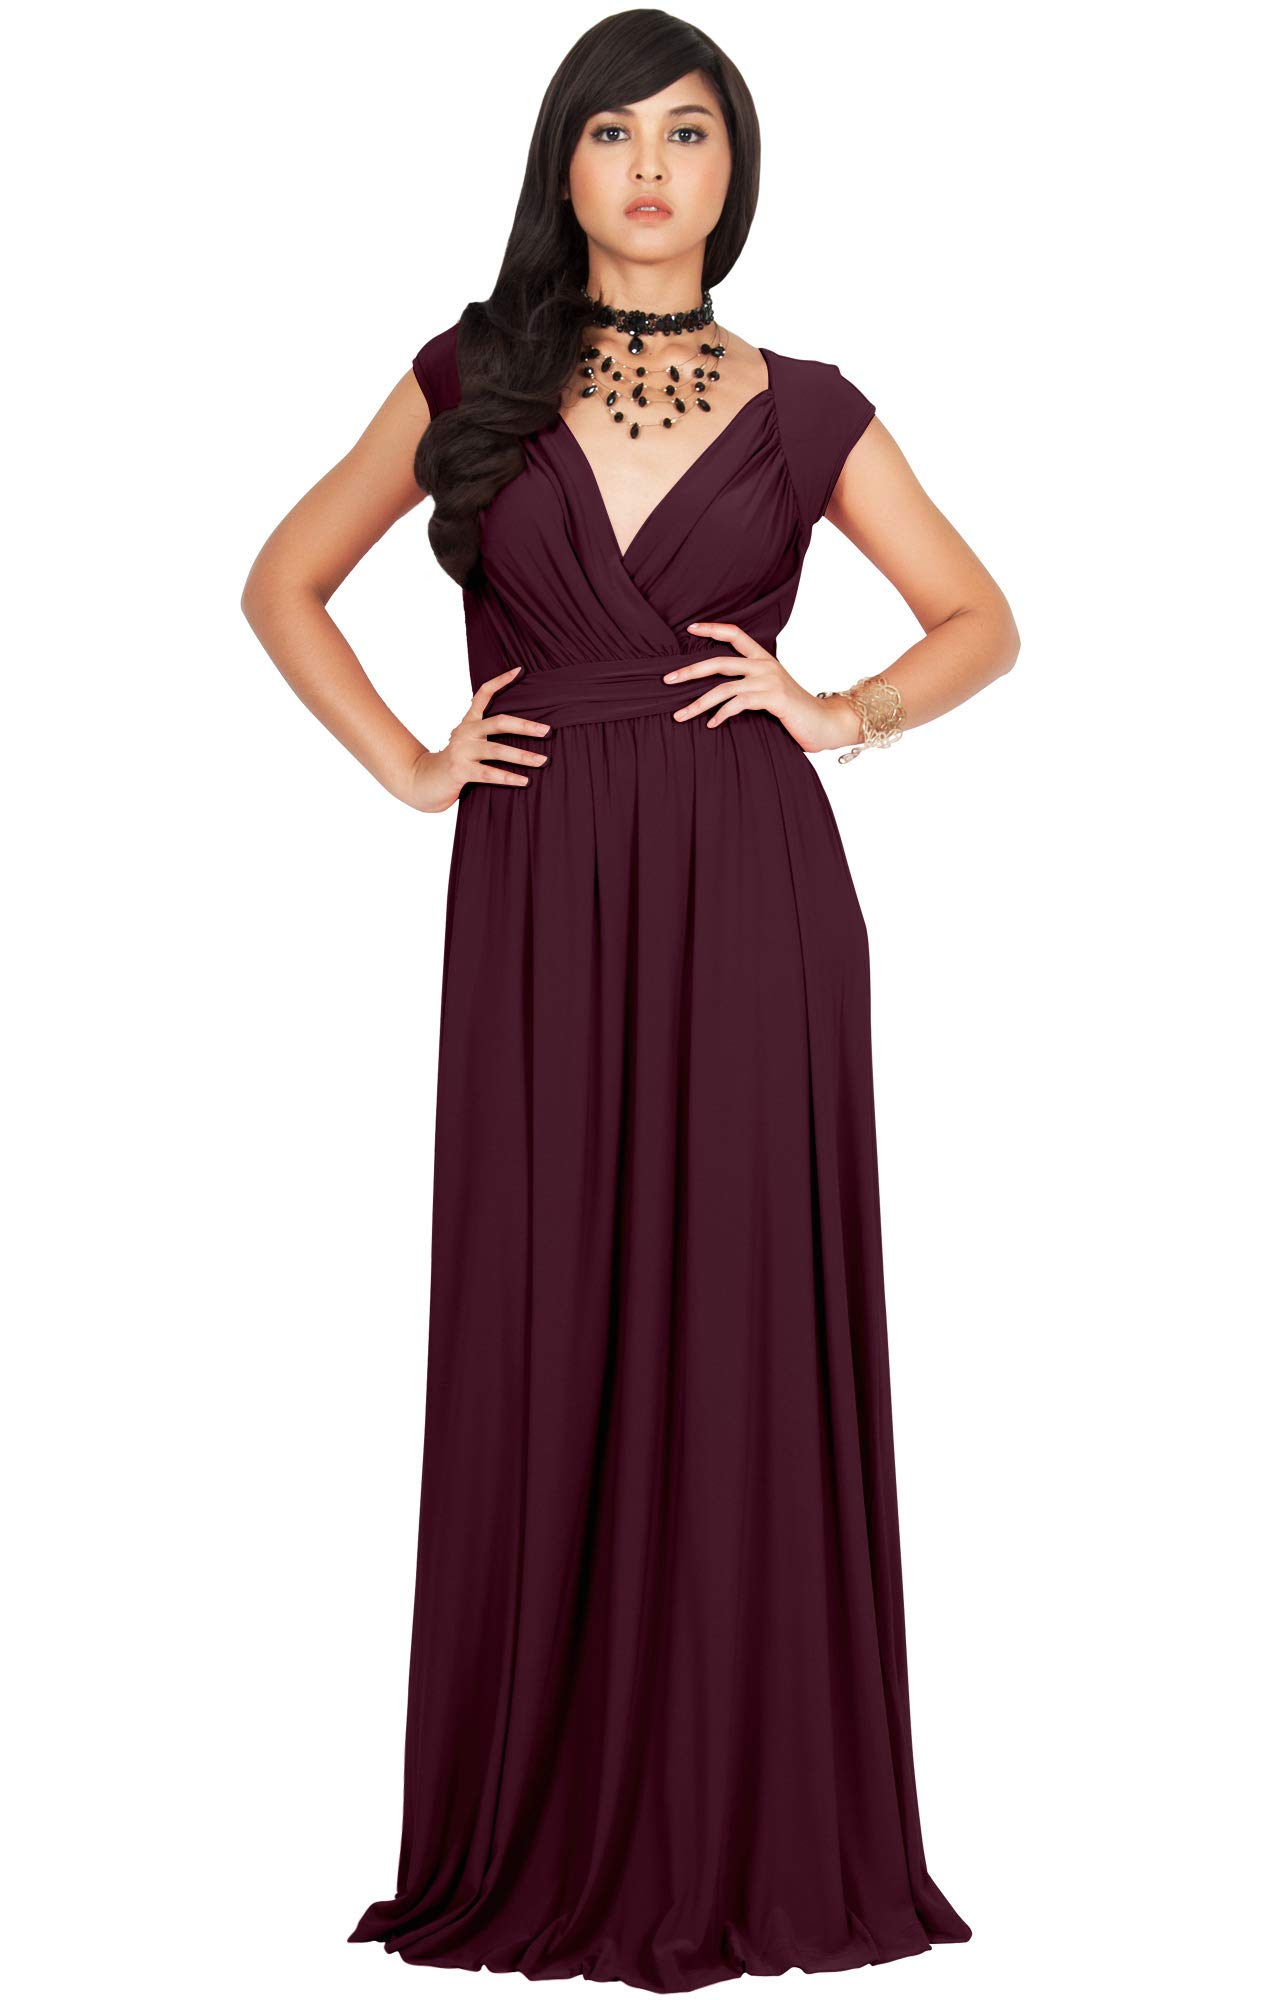 522e29a2ab5 KOH KOH Womens Long Cap Short Sleeve Cocktail Evening Sleeveless Bridesmaid  Wedding Party Flowy V-Neck Empire Waist Vintage Sexy Gown Gowns Maxi Dress  ...